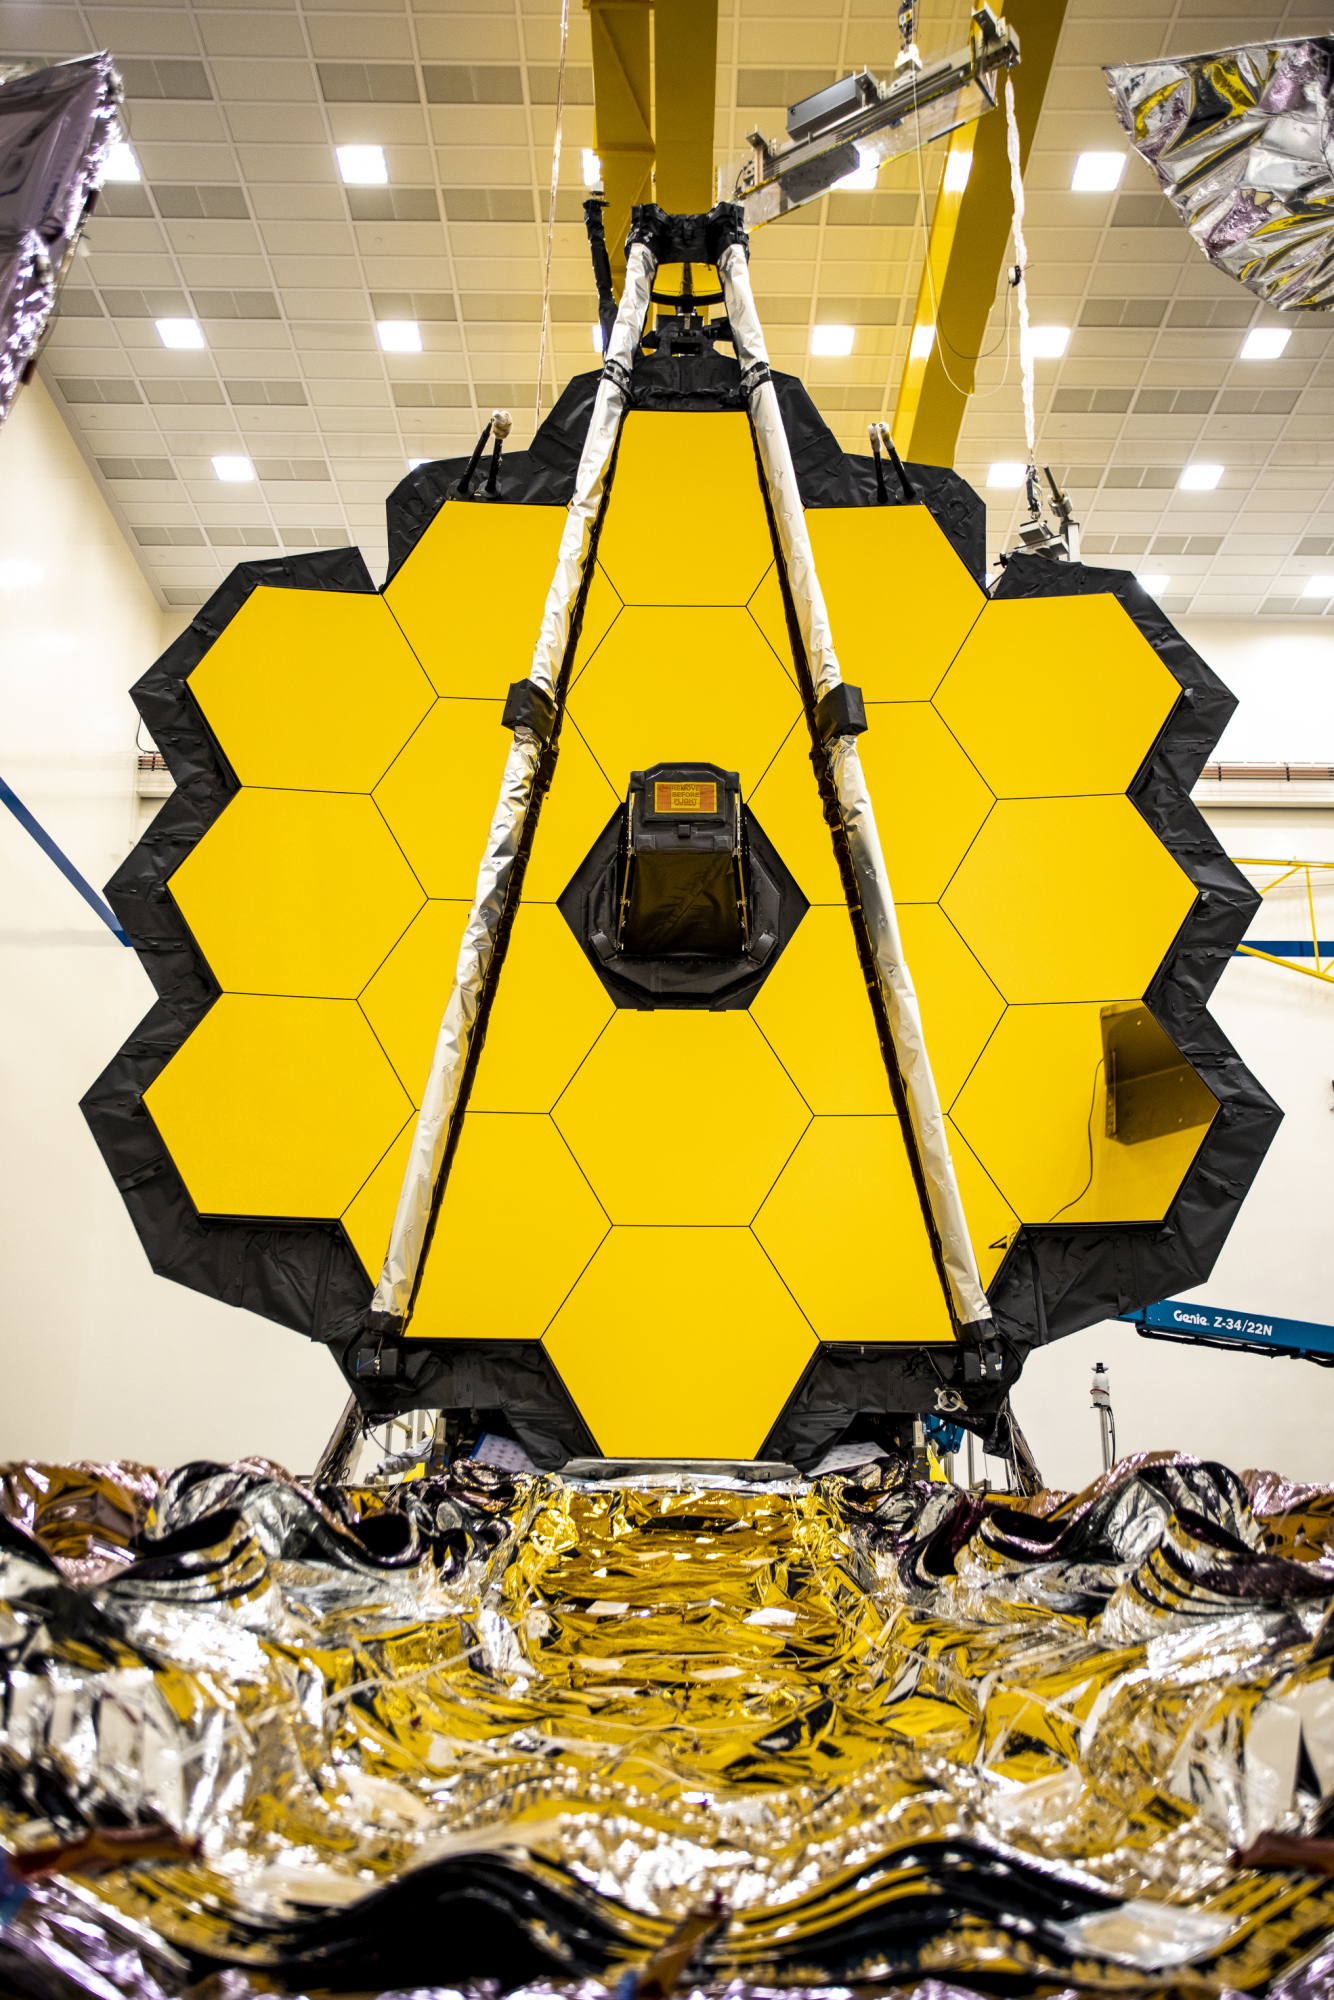 20-0304-m8-jm-jwst-1st-shift-8713_approved_ng20-0765.jpg